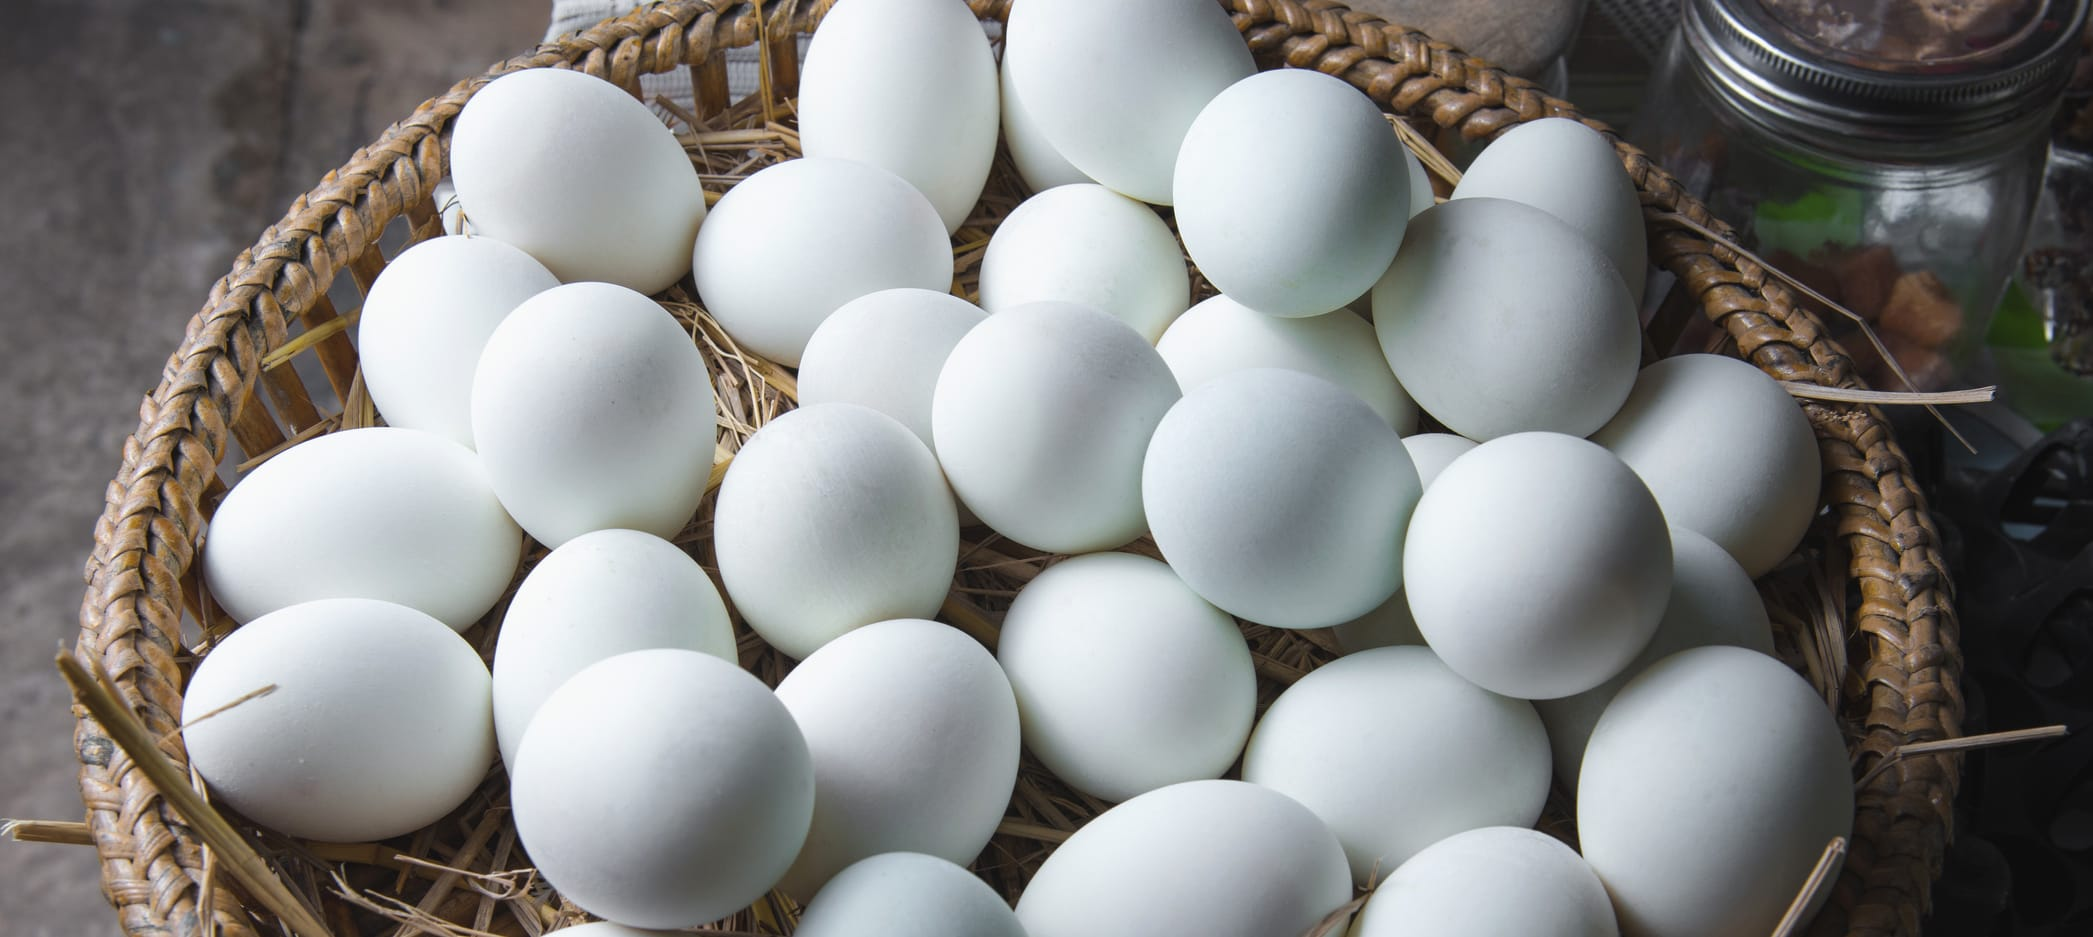 cost-of-cage-free-eggs-1